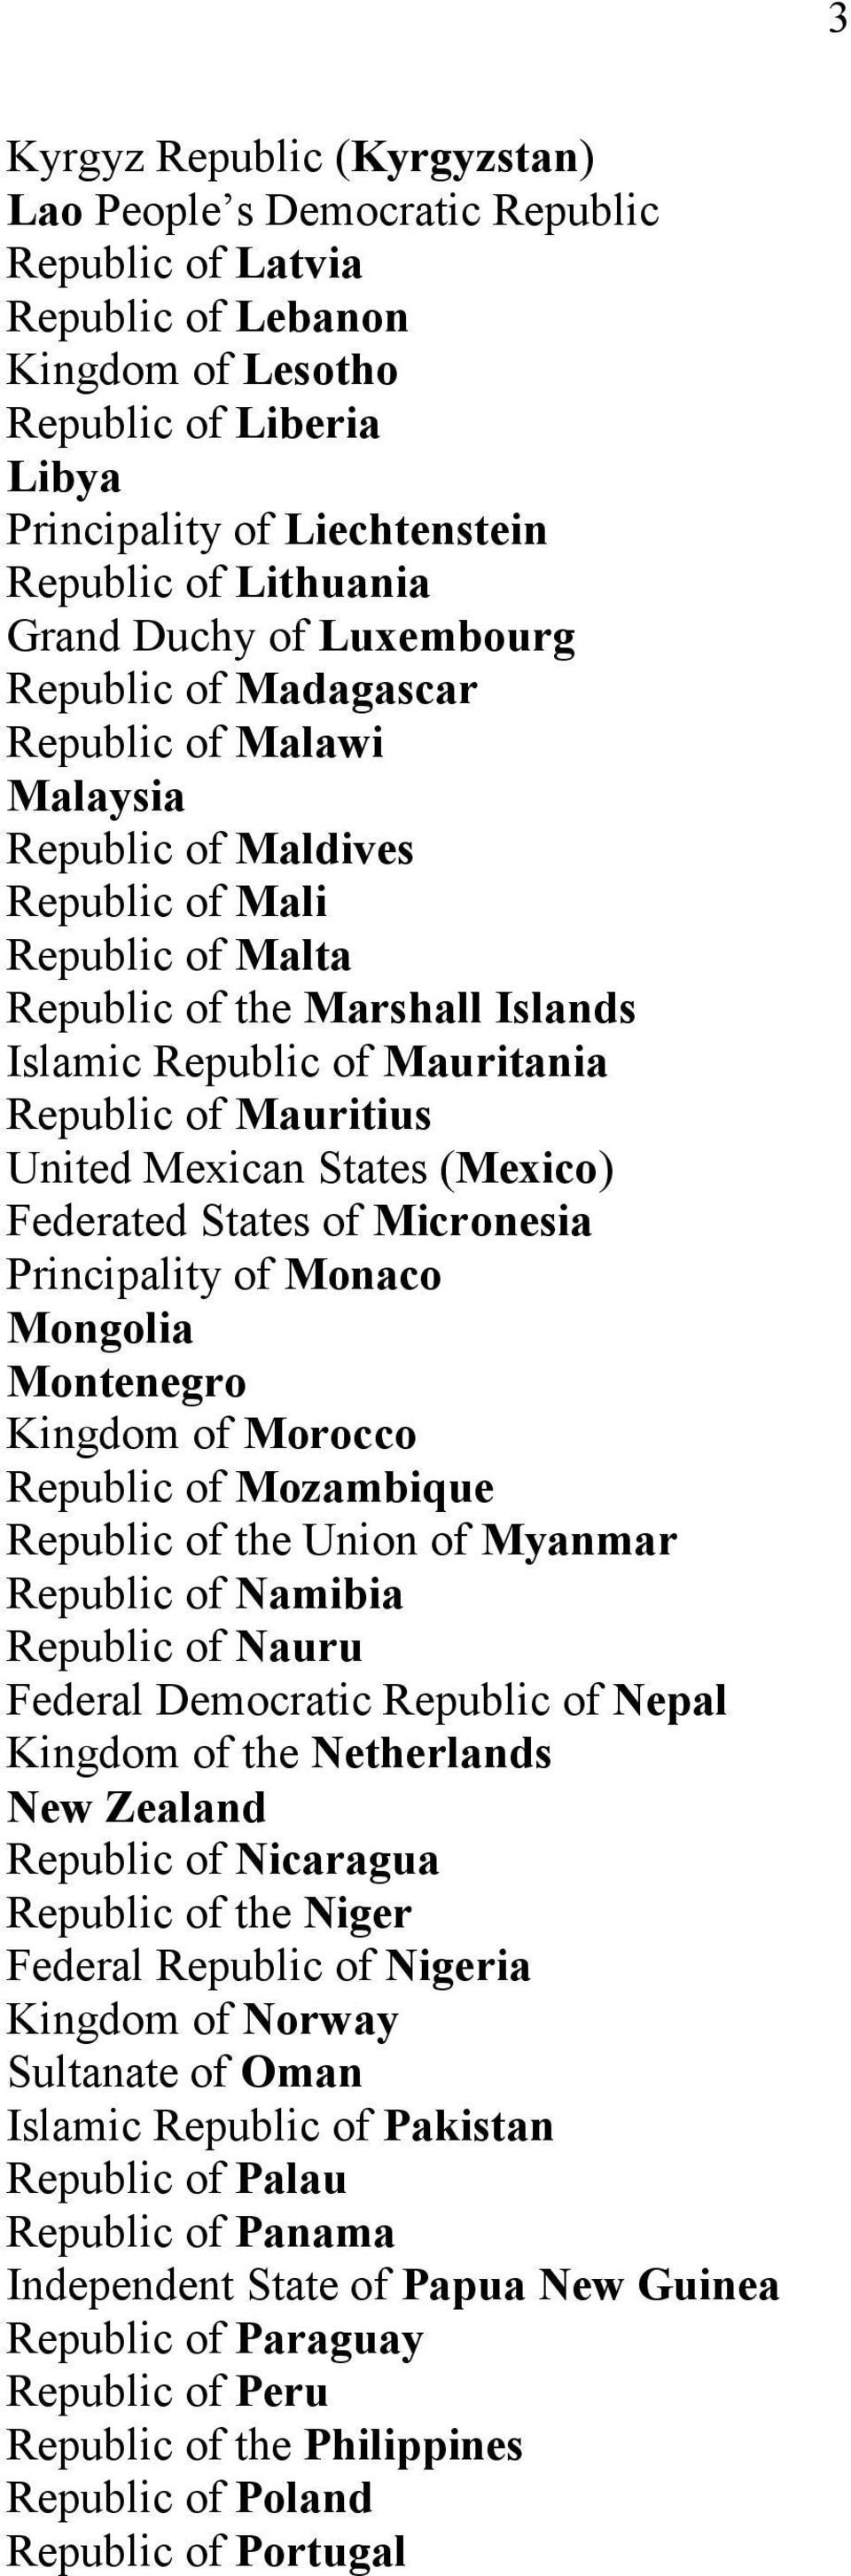 Republic of Mauritius United Mexican States (Mexico) Federated States of Micronesia Principality of Monaco Mongolia Montenegro Kingdom of Morocco Republic of Mozambique Republic of the Union of